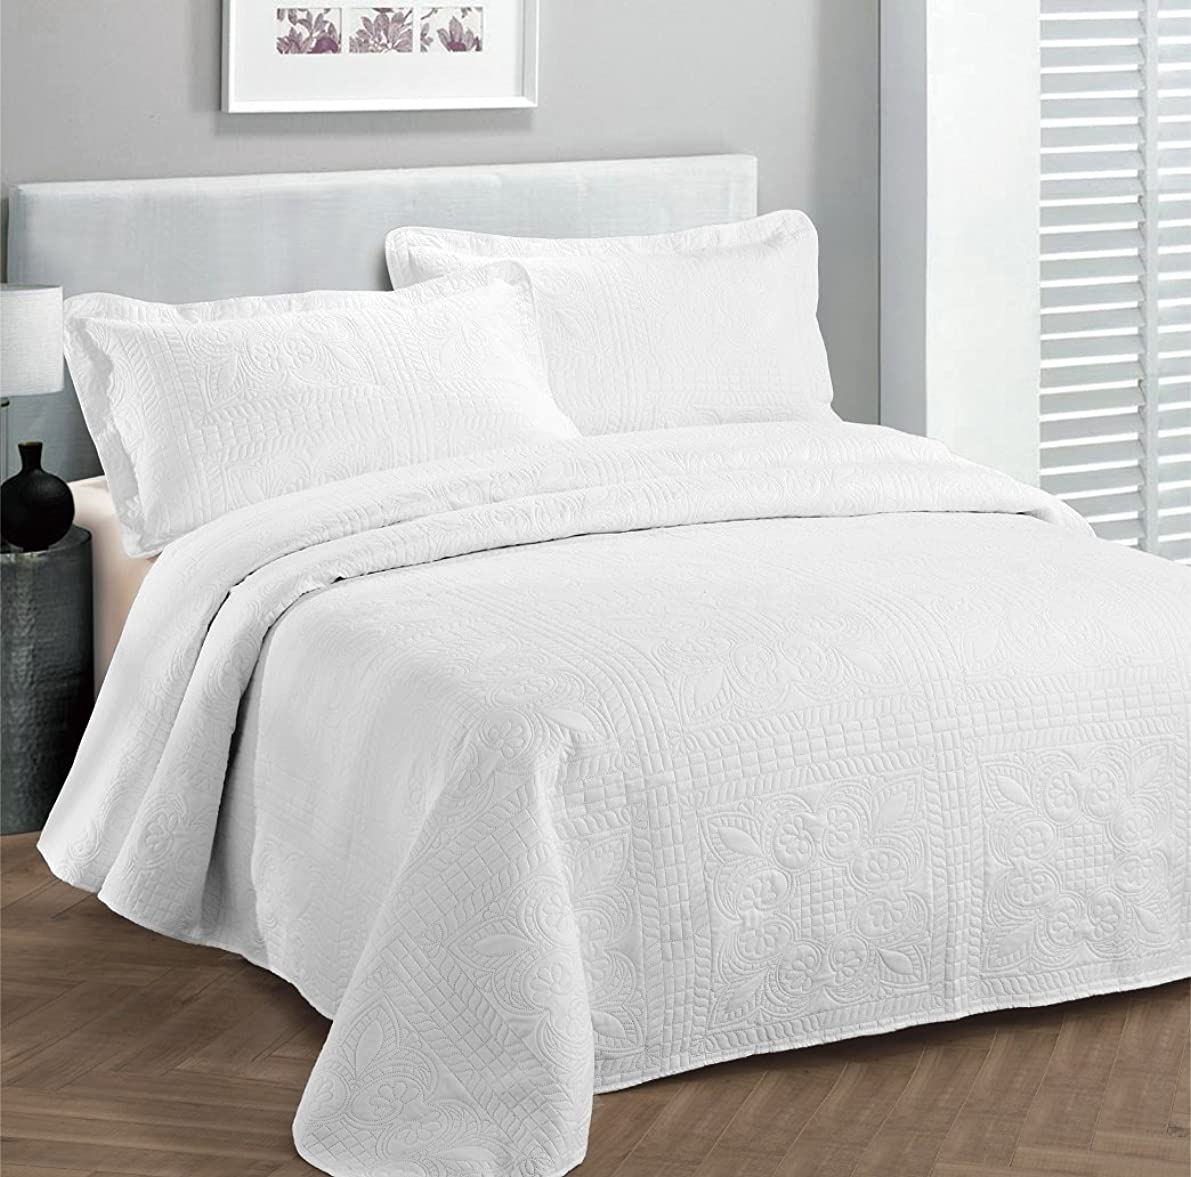 Fancy Collection 3pc Luxury Bedspread Coverlet Embossed Bed Cover Solid White New Over Size 118